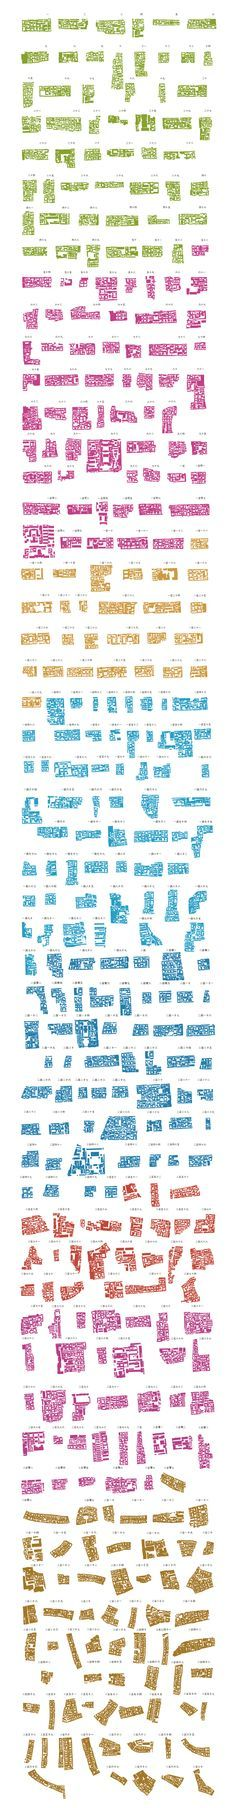 "Part of Instant Hutong's Community Catalogue 2007, a catalog of hutong block patterns laid out as a ""series of 1500 communities of courtyard houses cut out and isolated from the map of downtown Beijing""."